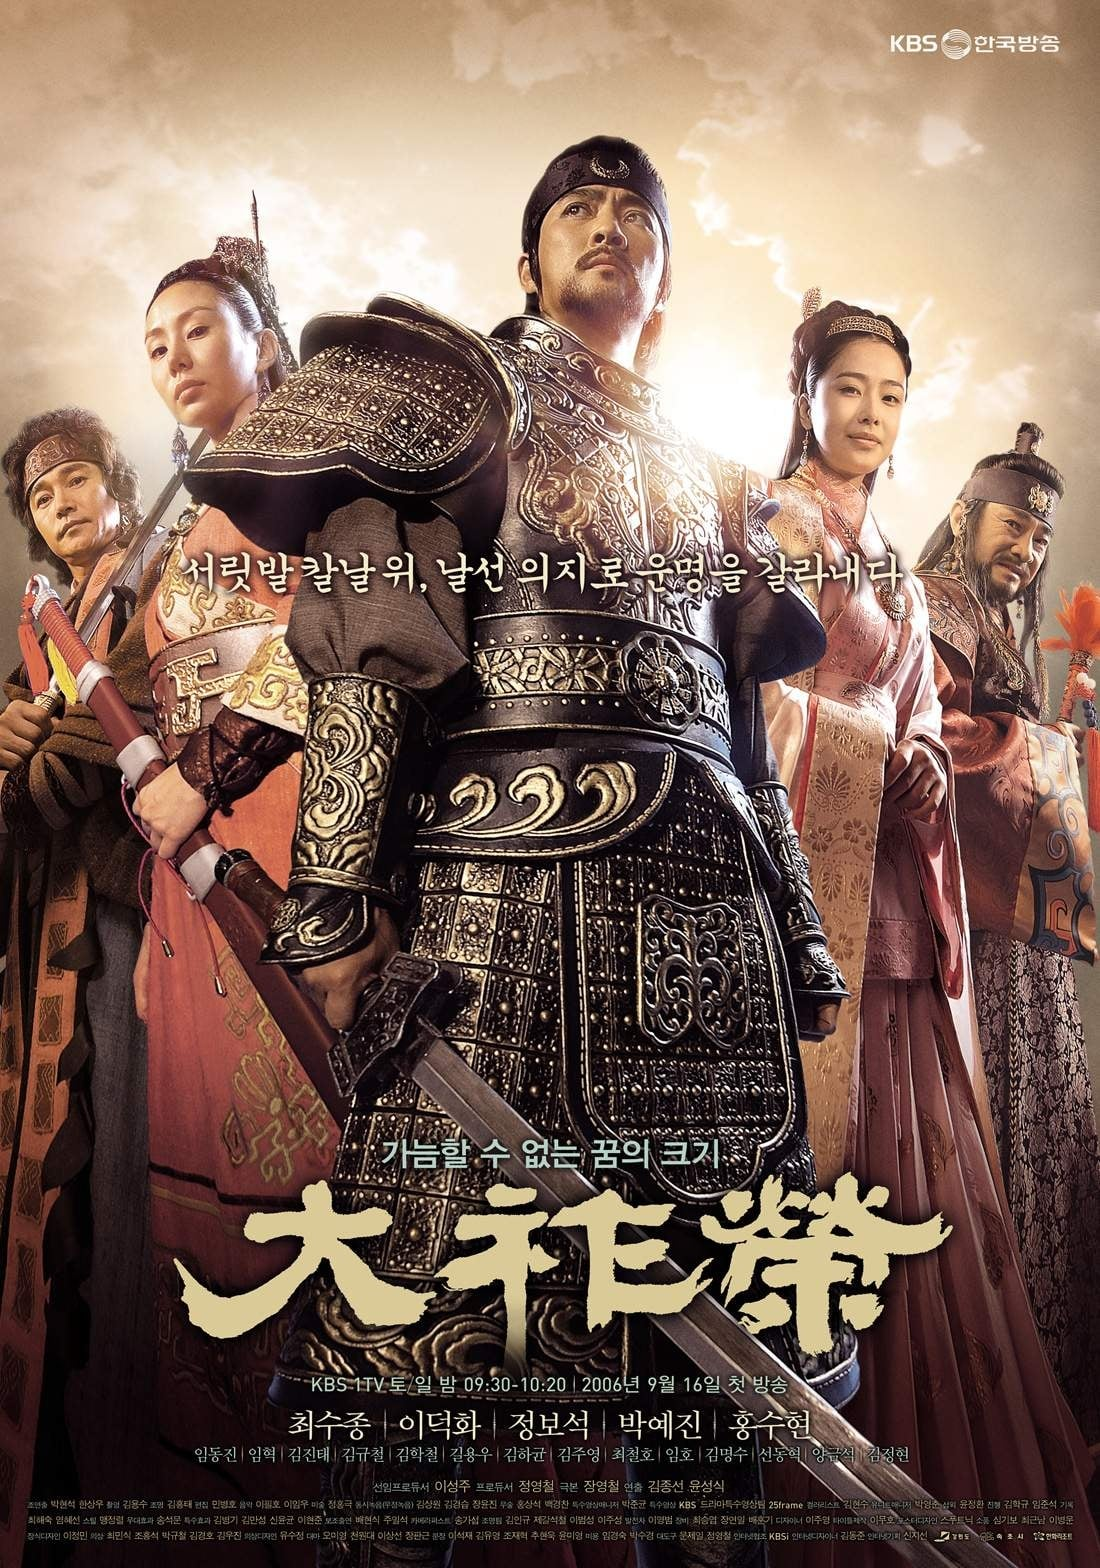 The King Dae Joyoung (2006)